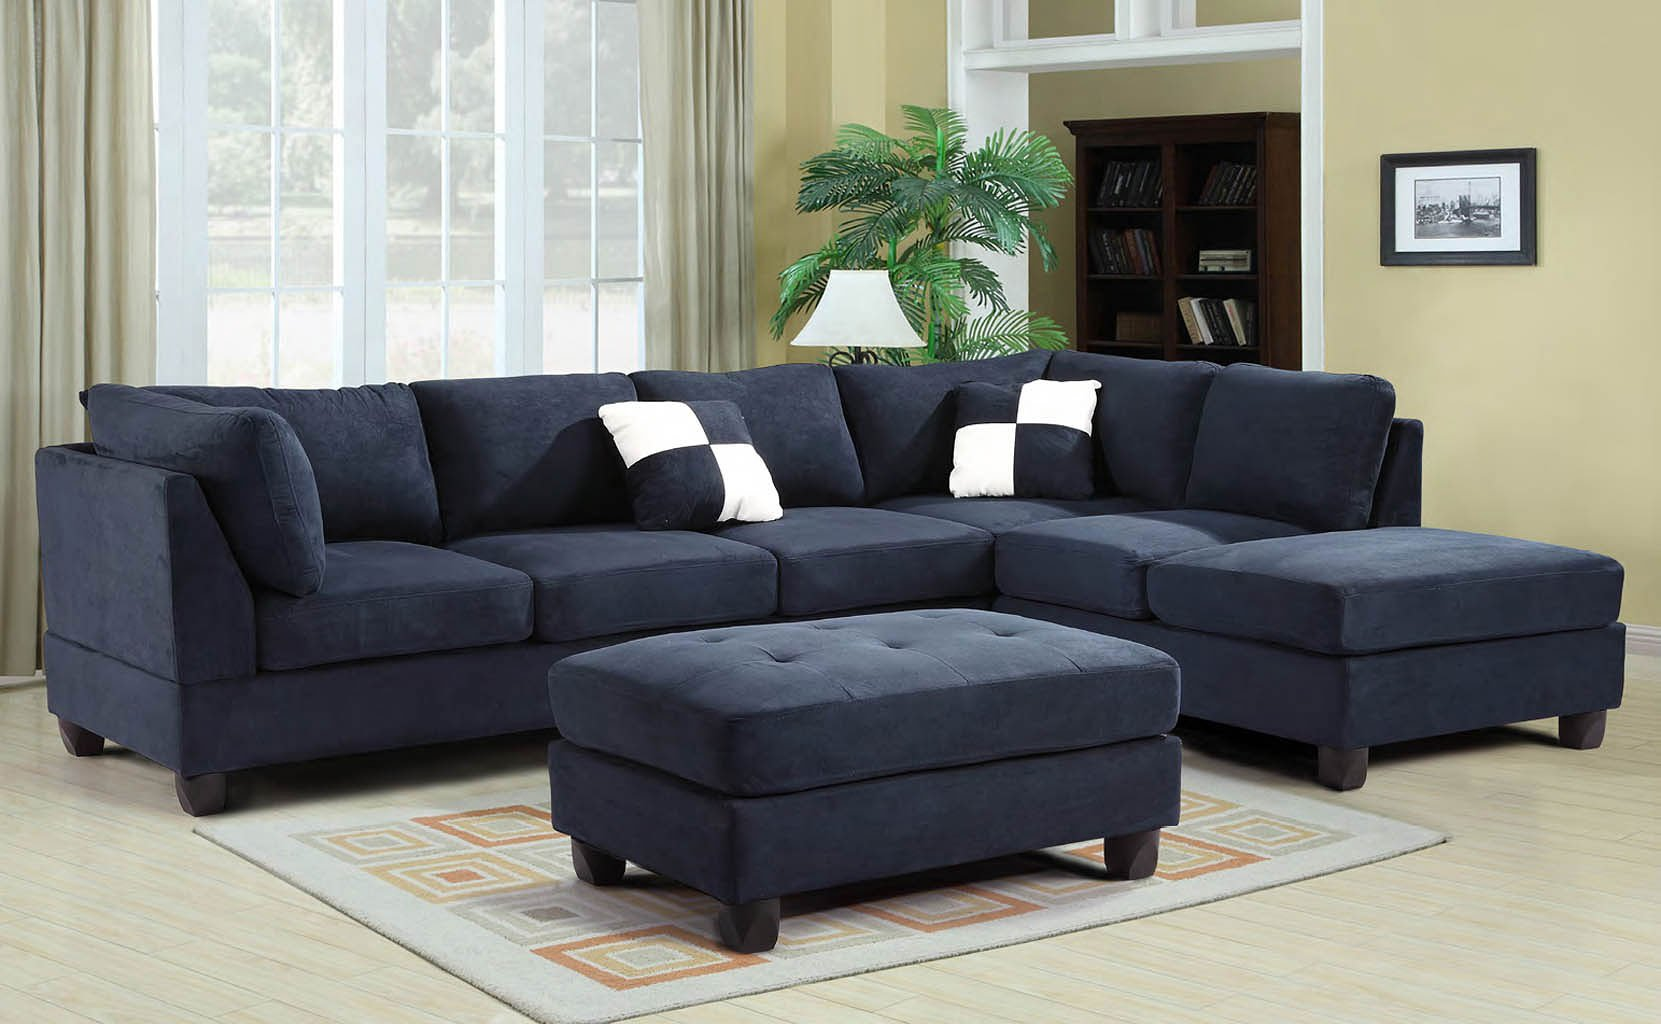 G630 Reversible Sectional Set (Navy Blue)